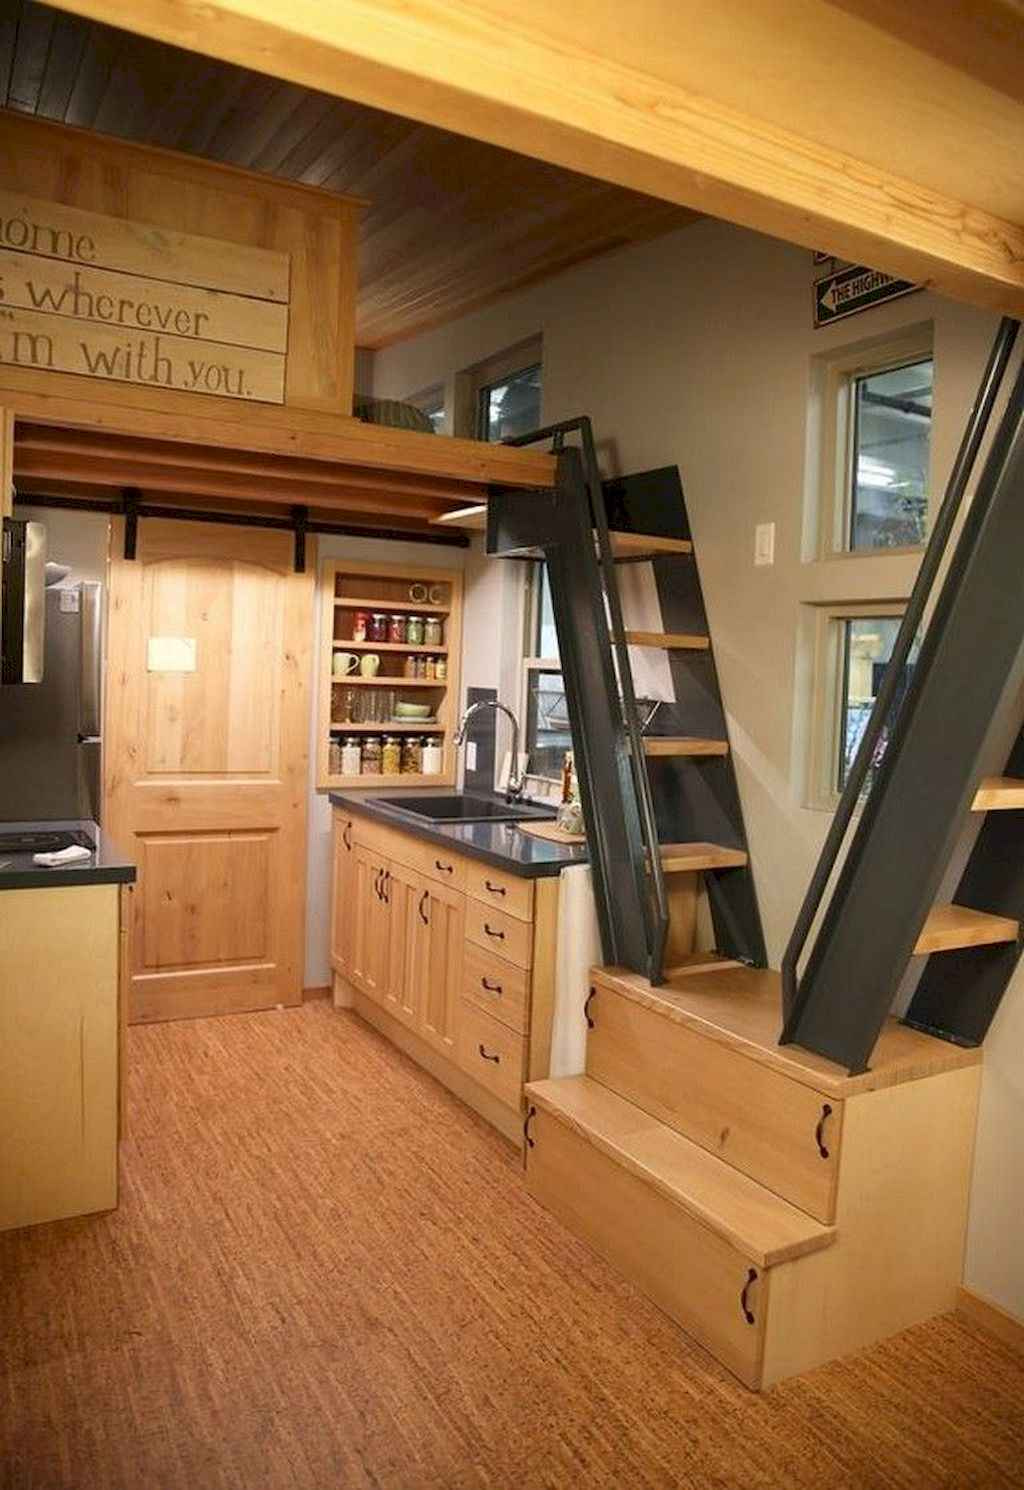 08 Tiny House Kitchen Storage Organization and Tips Ideas